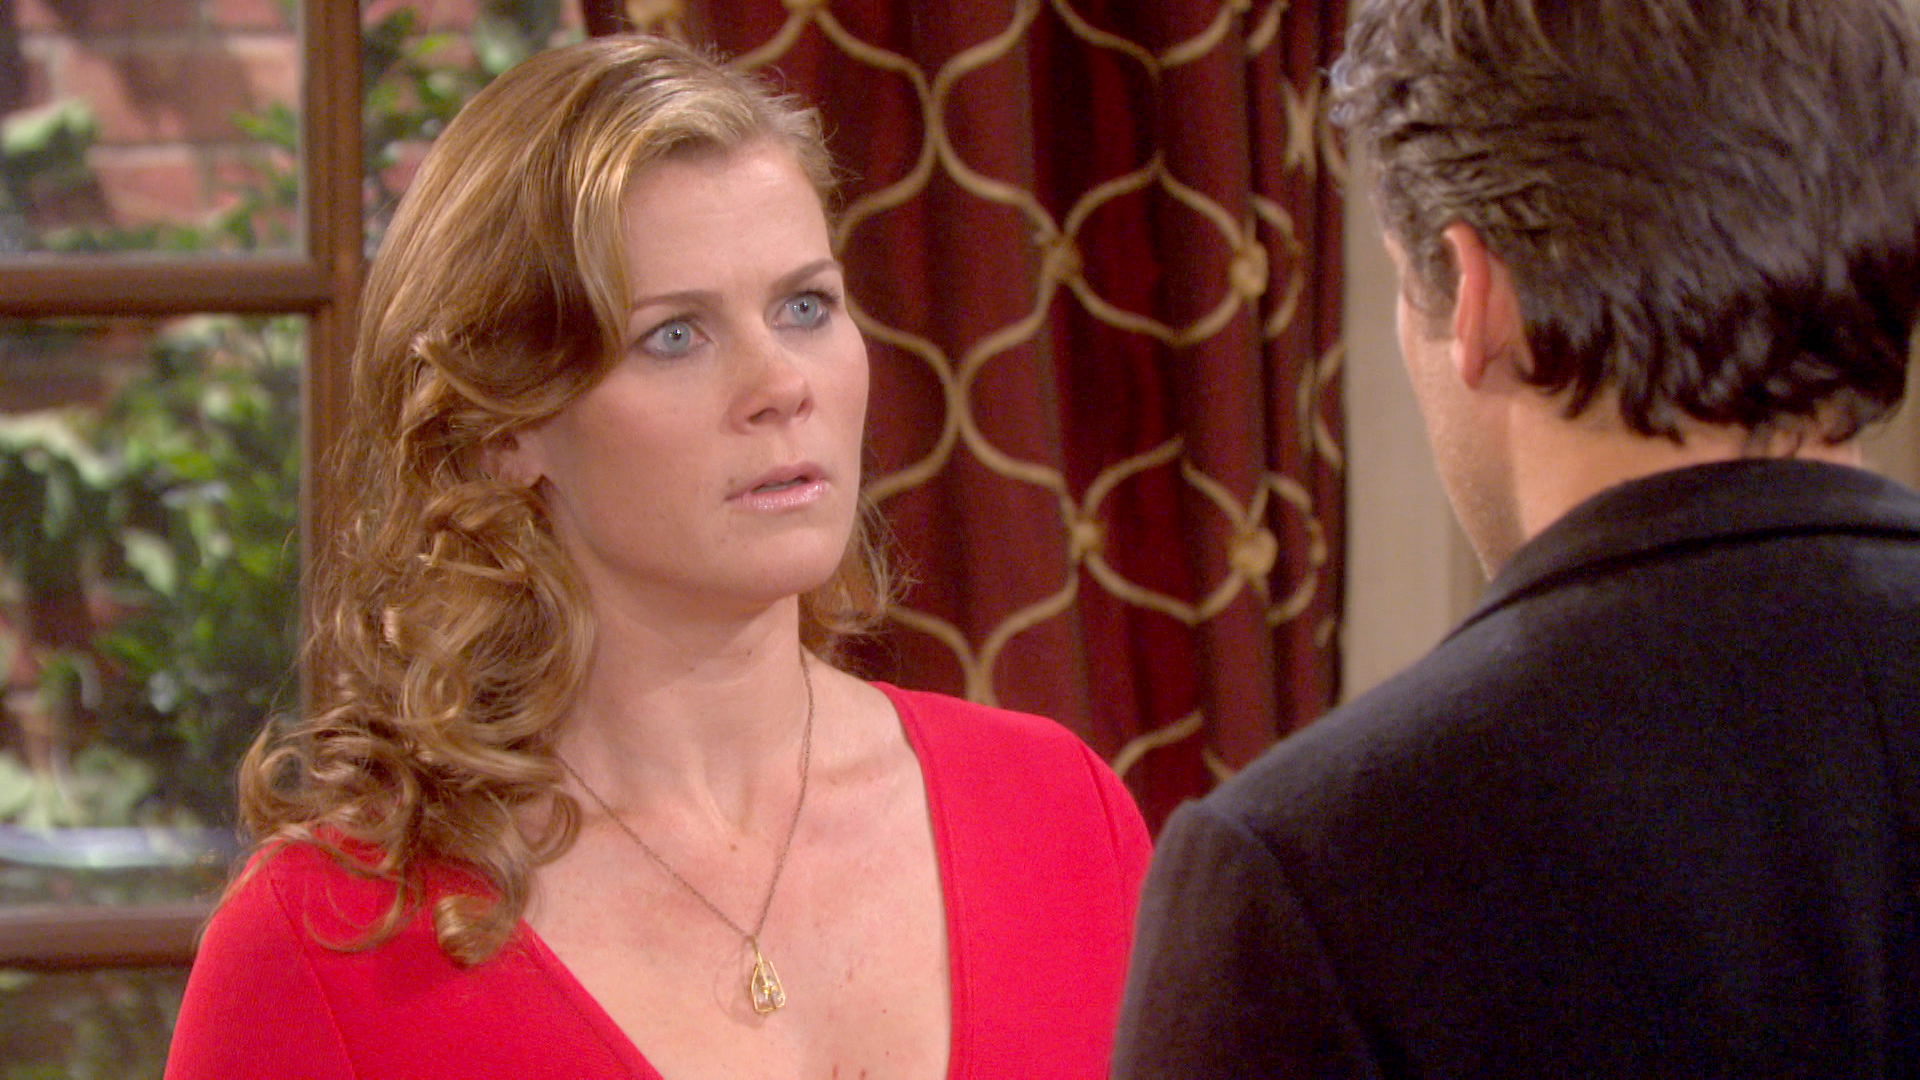 Sami explodes when she learns Eric plans to marry Nicole.